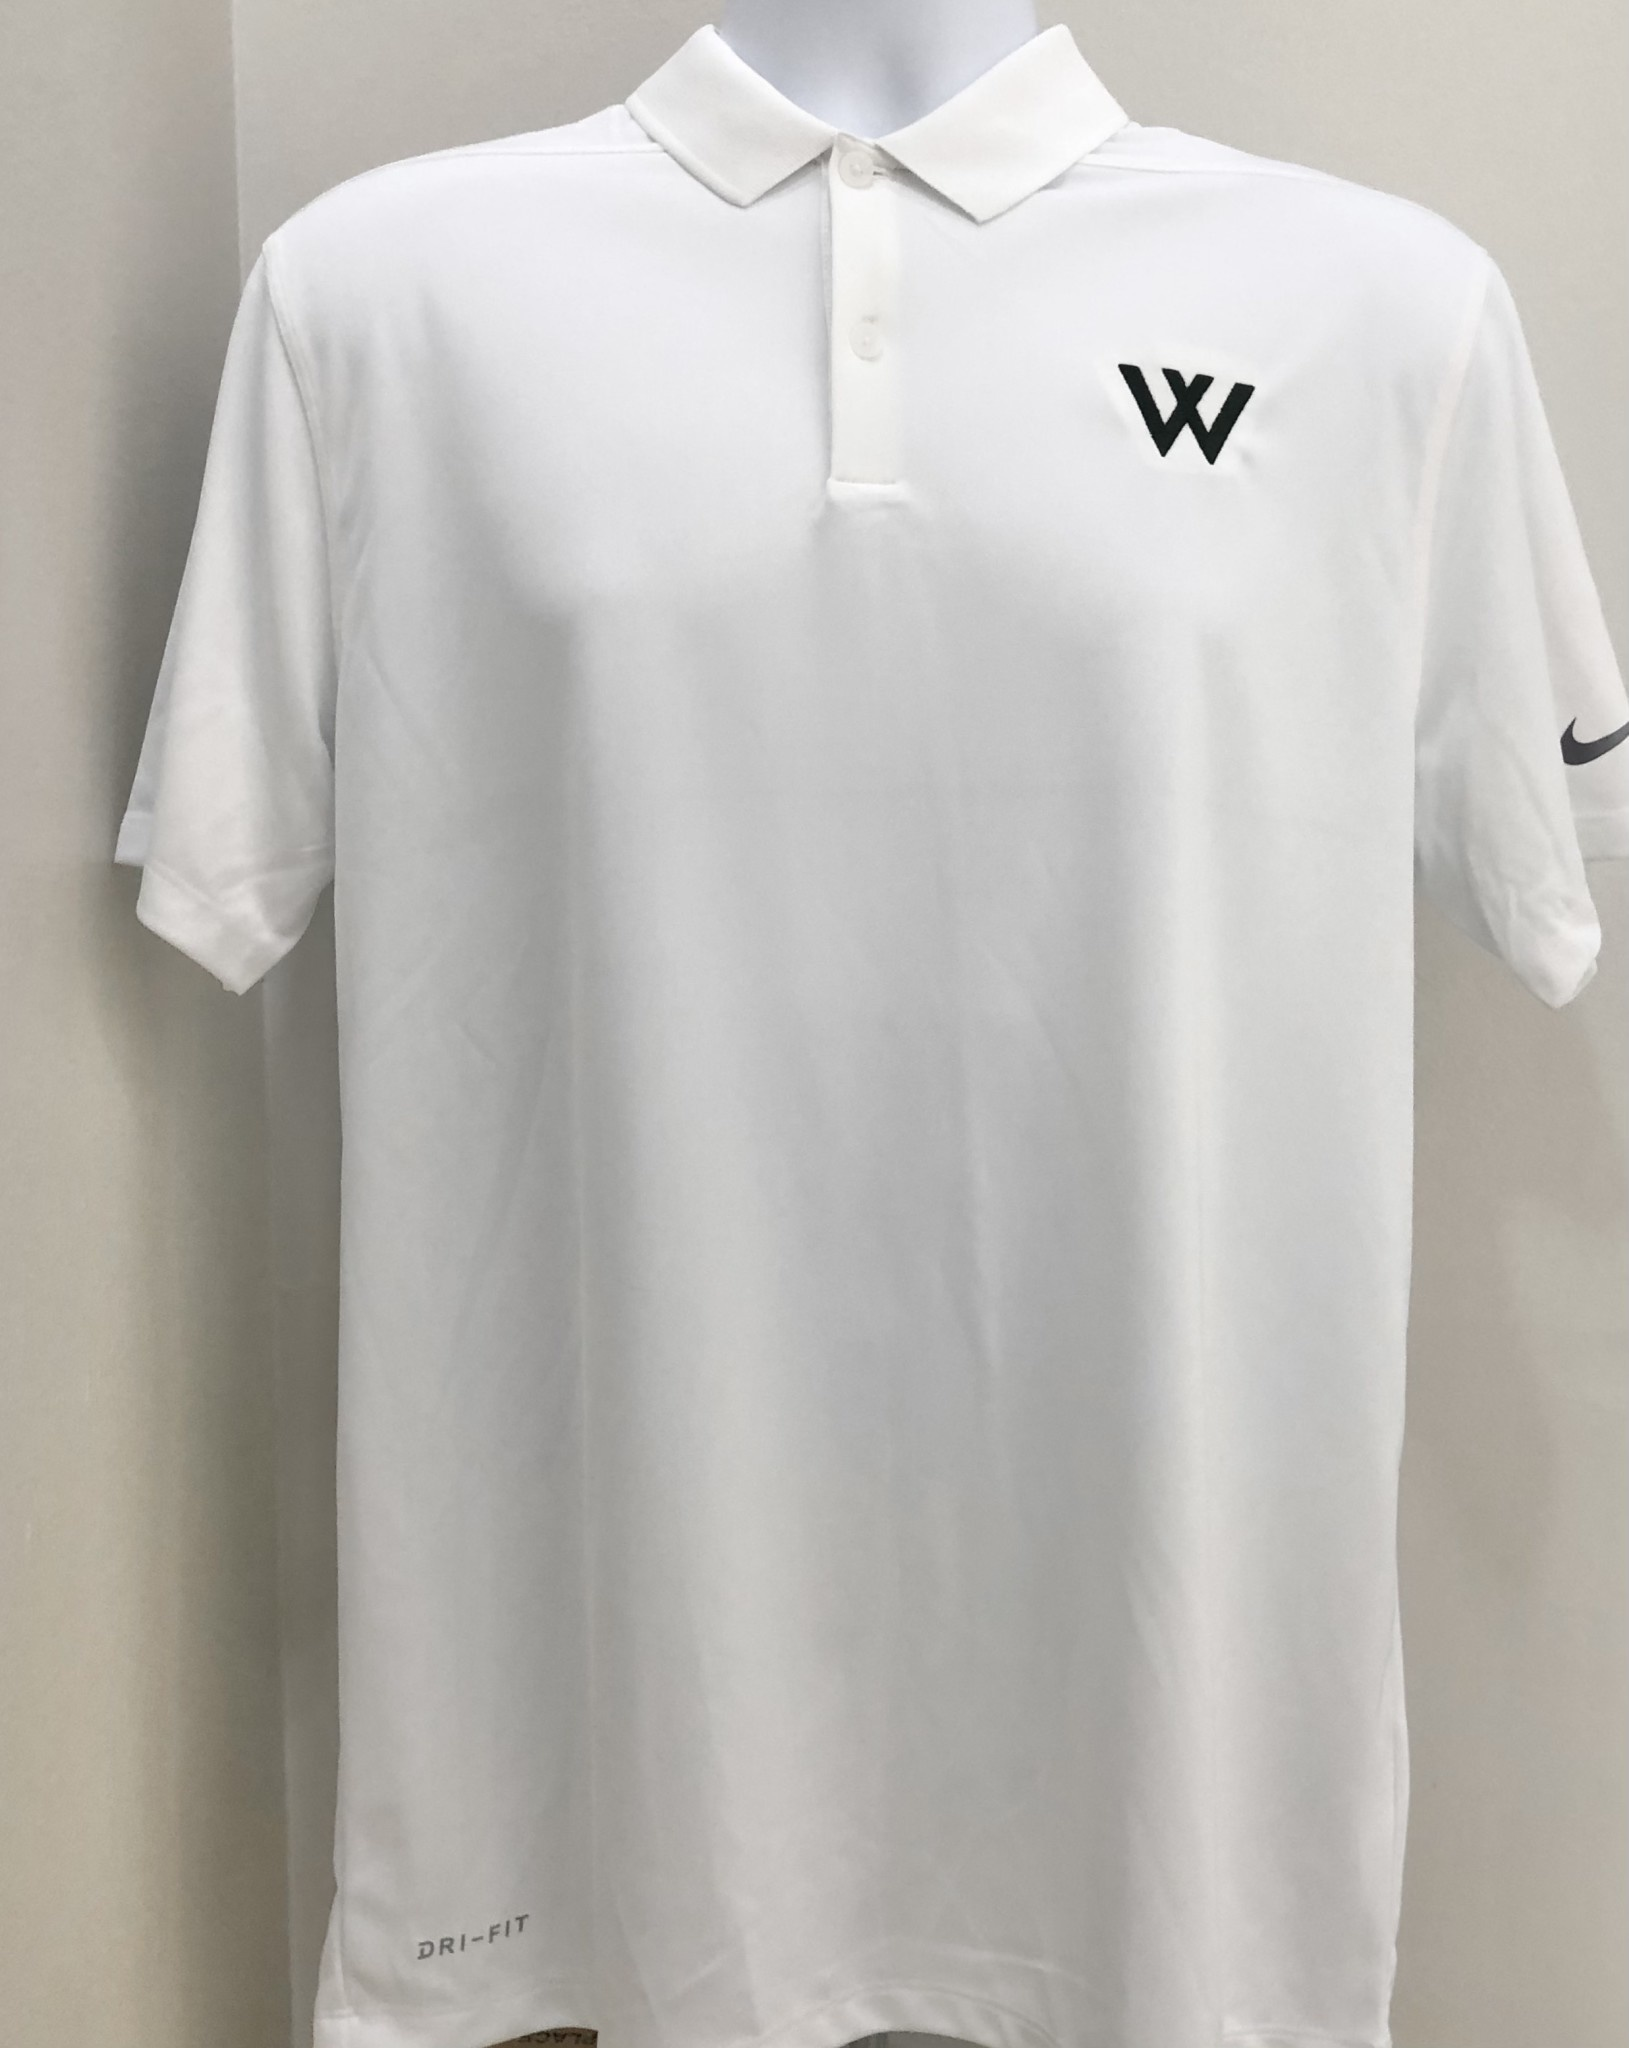 Nike Polo: Nike Victory White with green W